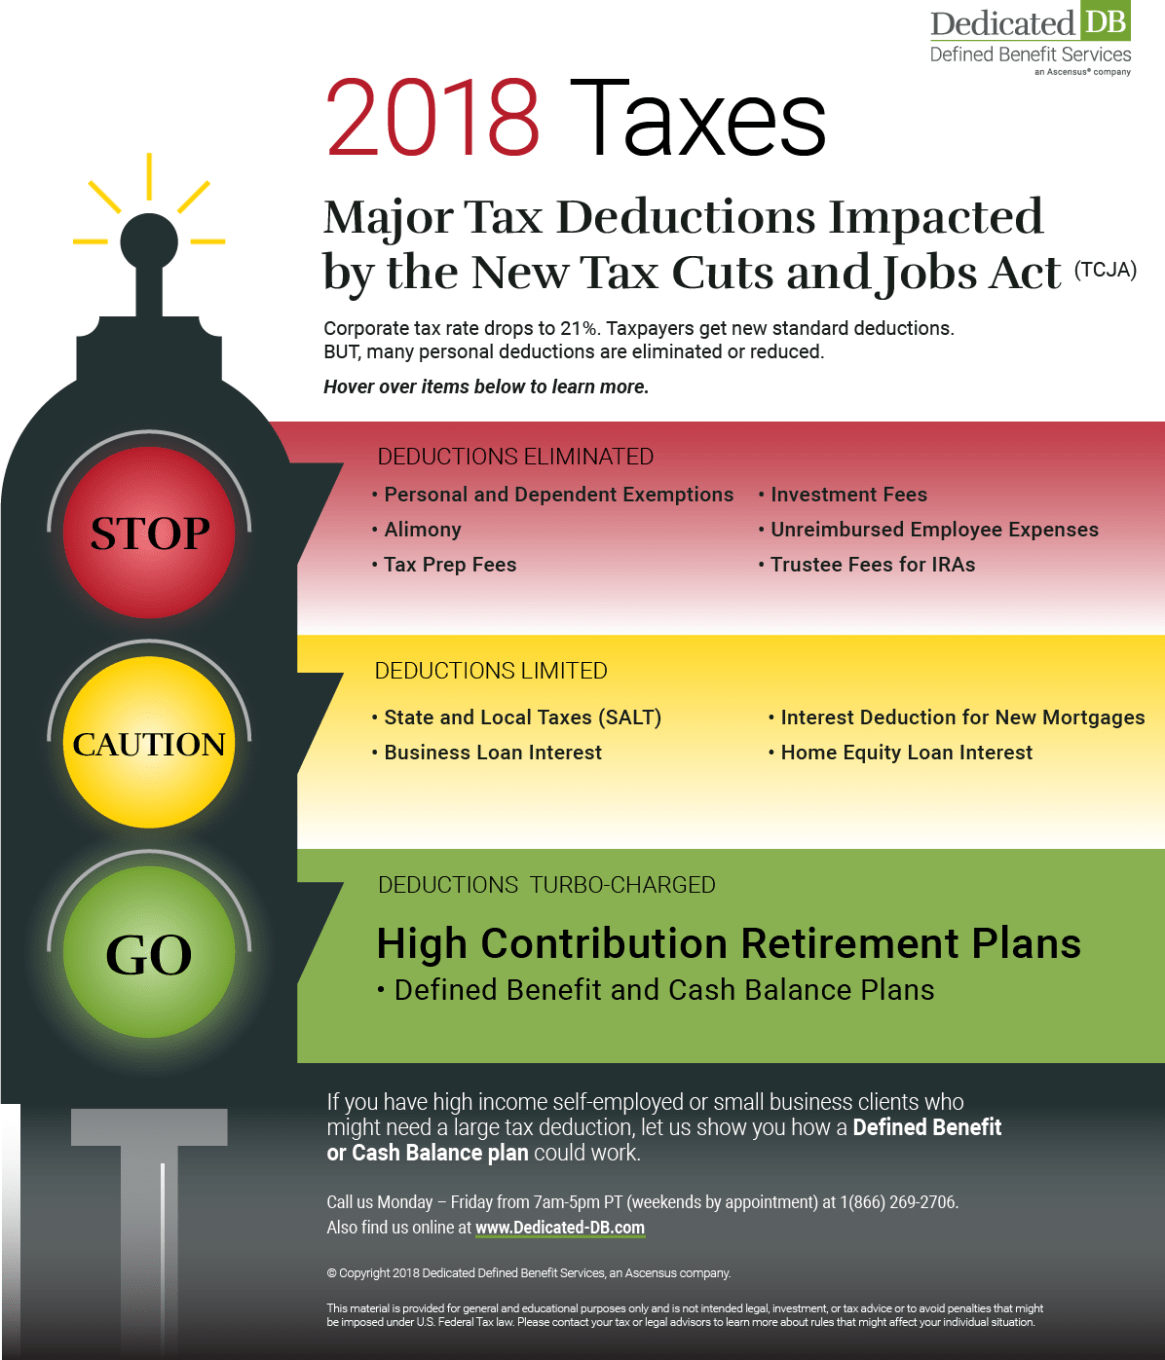 Tax Deduction Changes for 2018